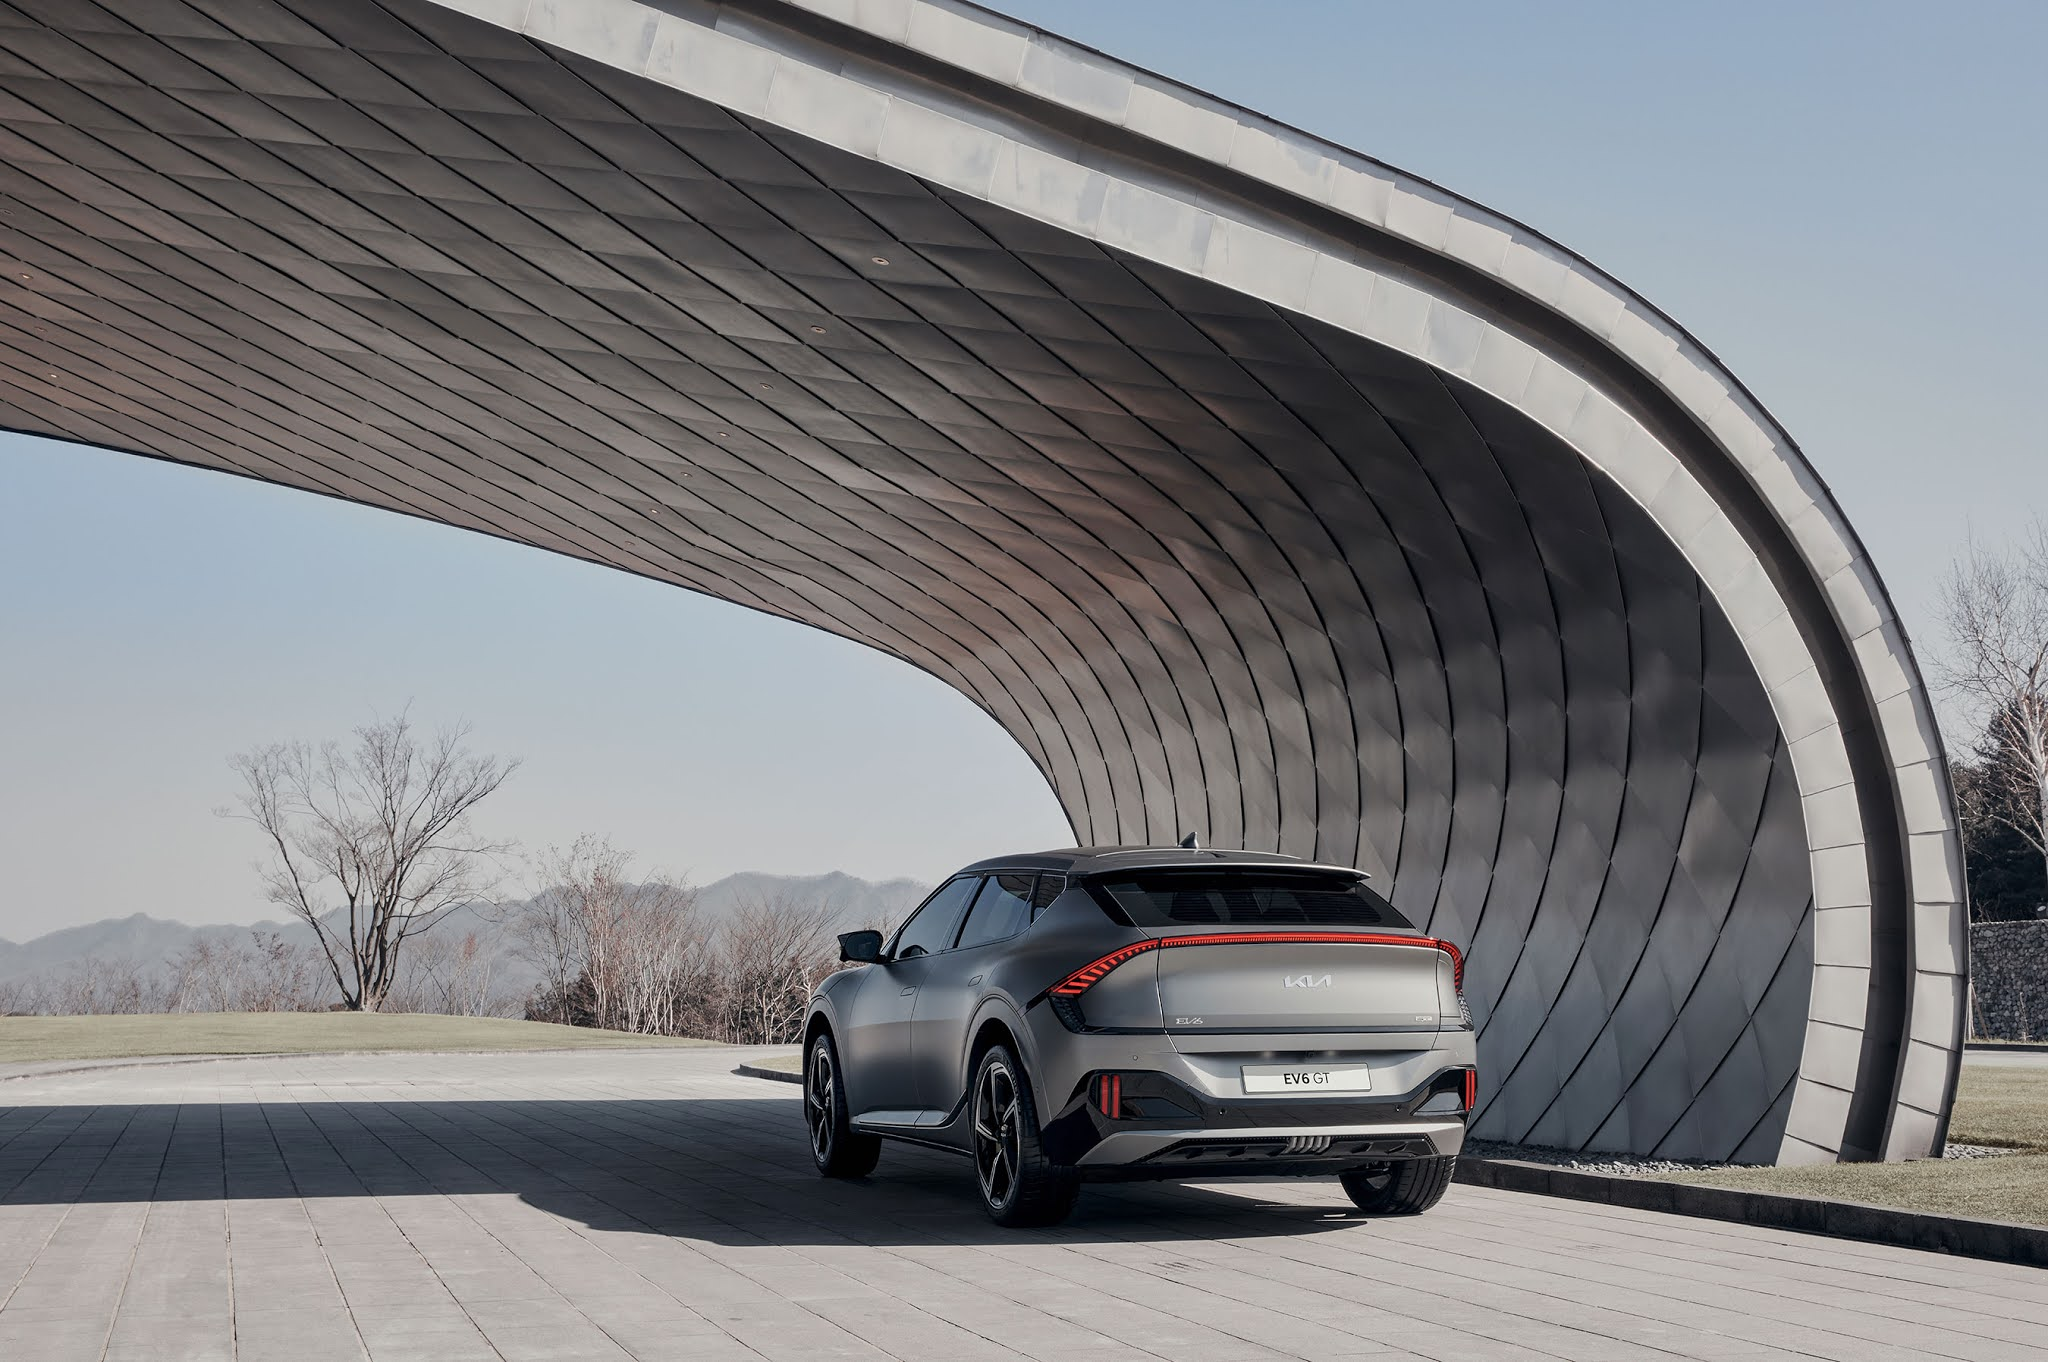 Kia EV6 redefines boundaries of electric mobility with inspiring design, exhilarating performance and innovative space